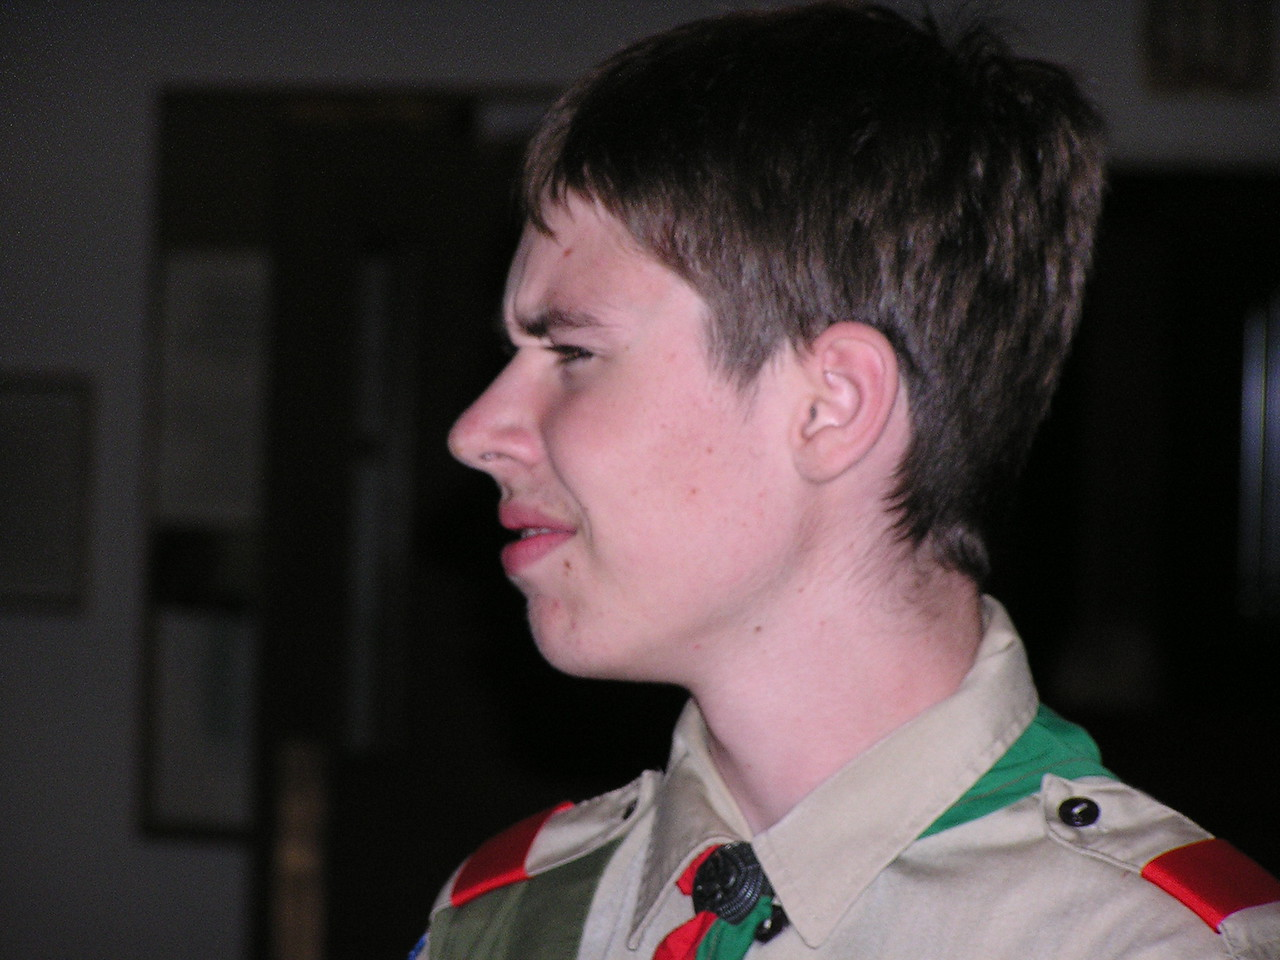 03-09-08 Kevin, Scouts 029